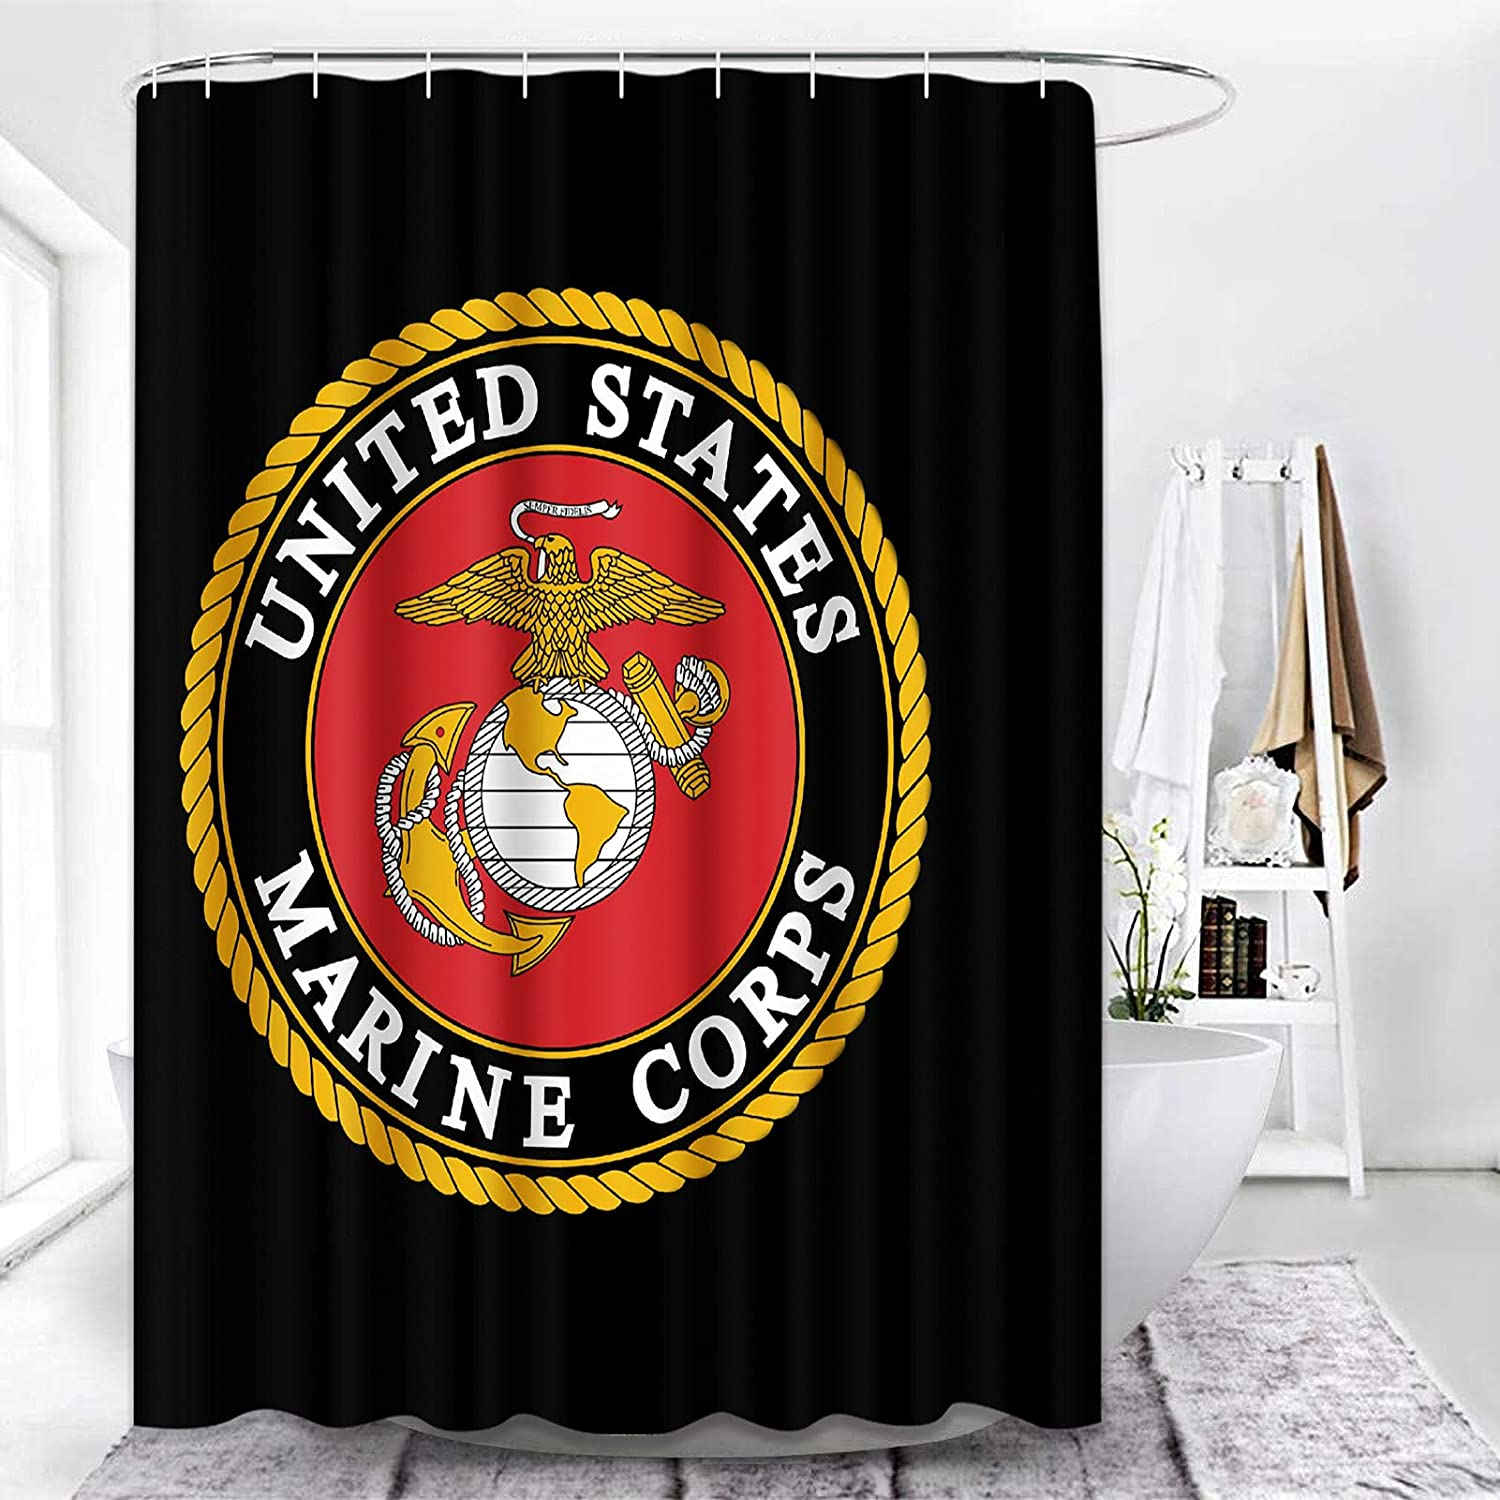 ArtSocket Shower Curtain American Independence Day Freedom July 1st United States Marine Corps Waterproof Polyester Fabric Bathroom Decor Bath 72 x 72 Inches Set with Hooks